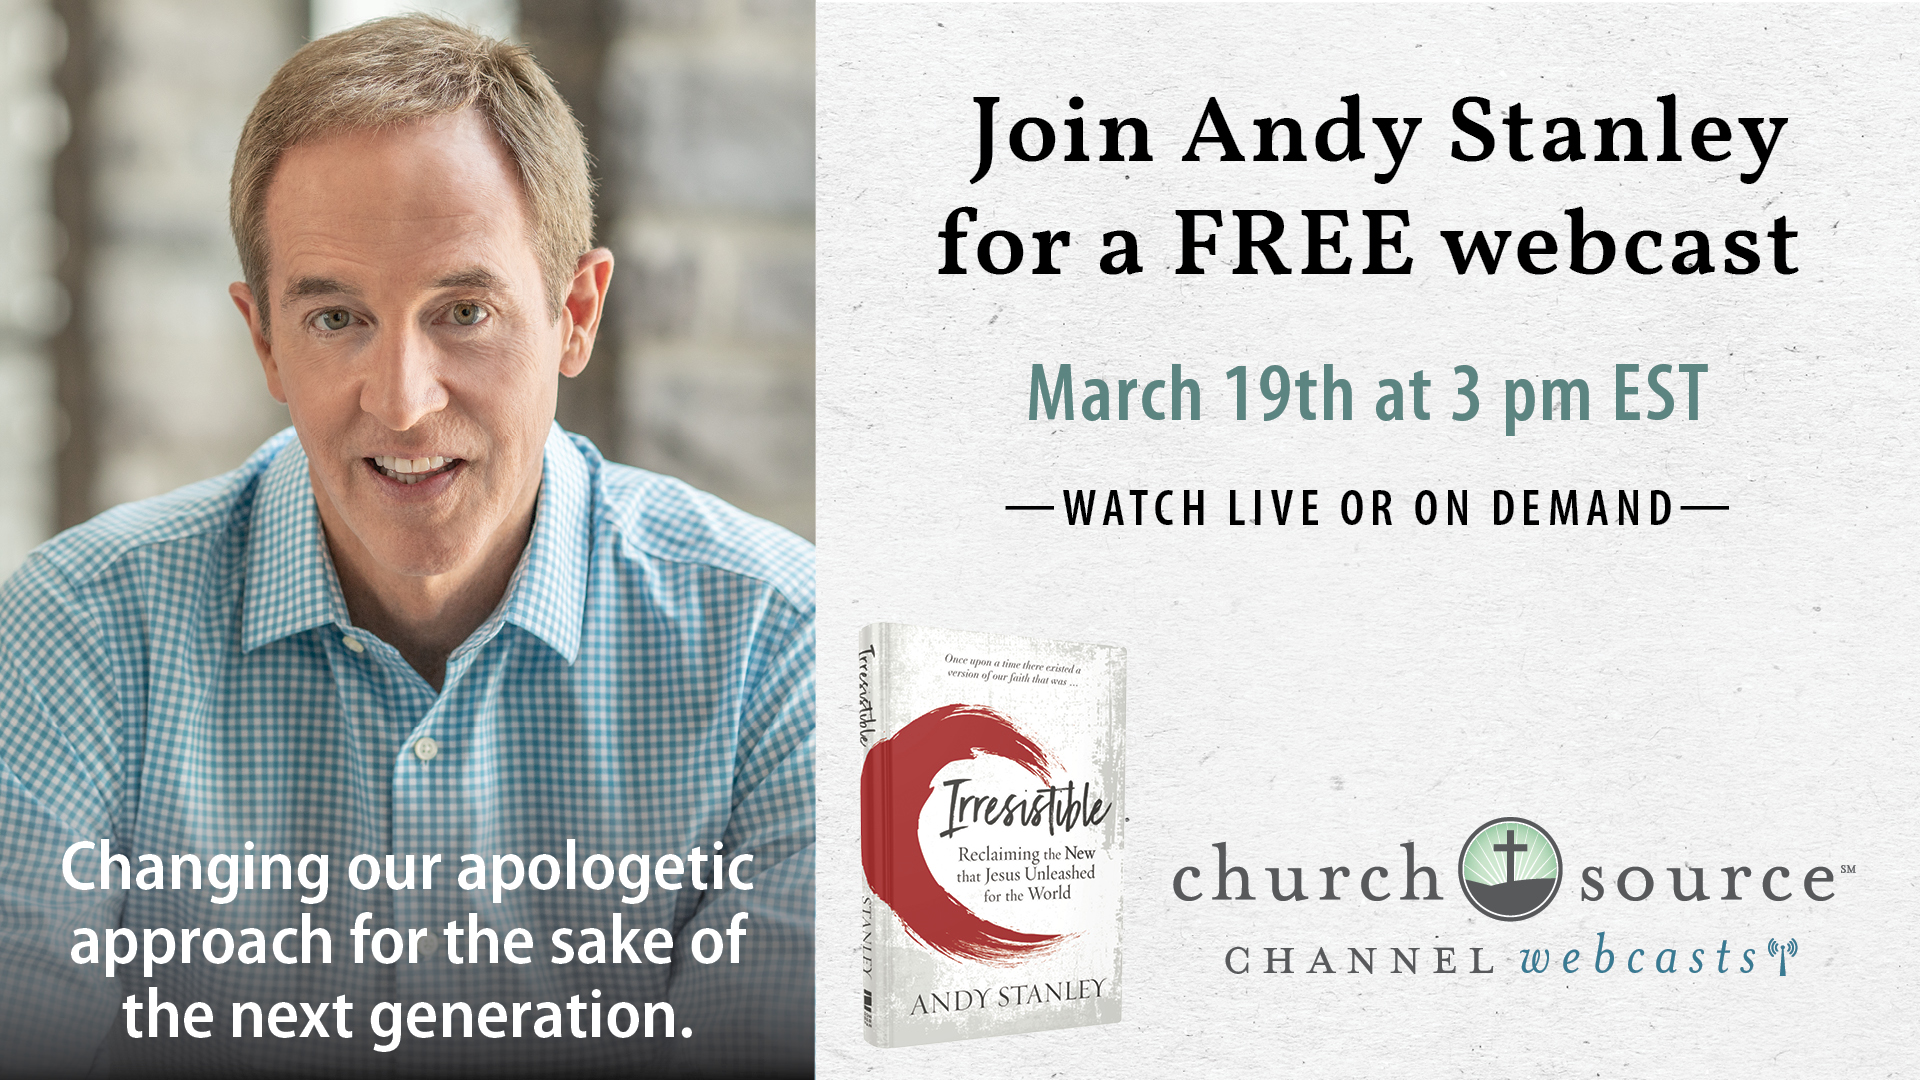 Changing our apologetic approach for the sake of the next generation - Webcast with Andy Stanley